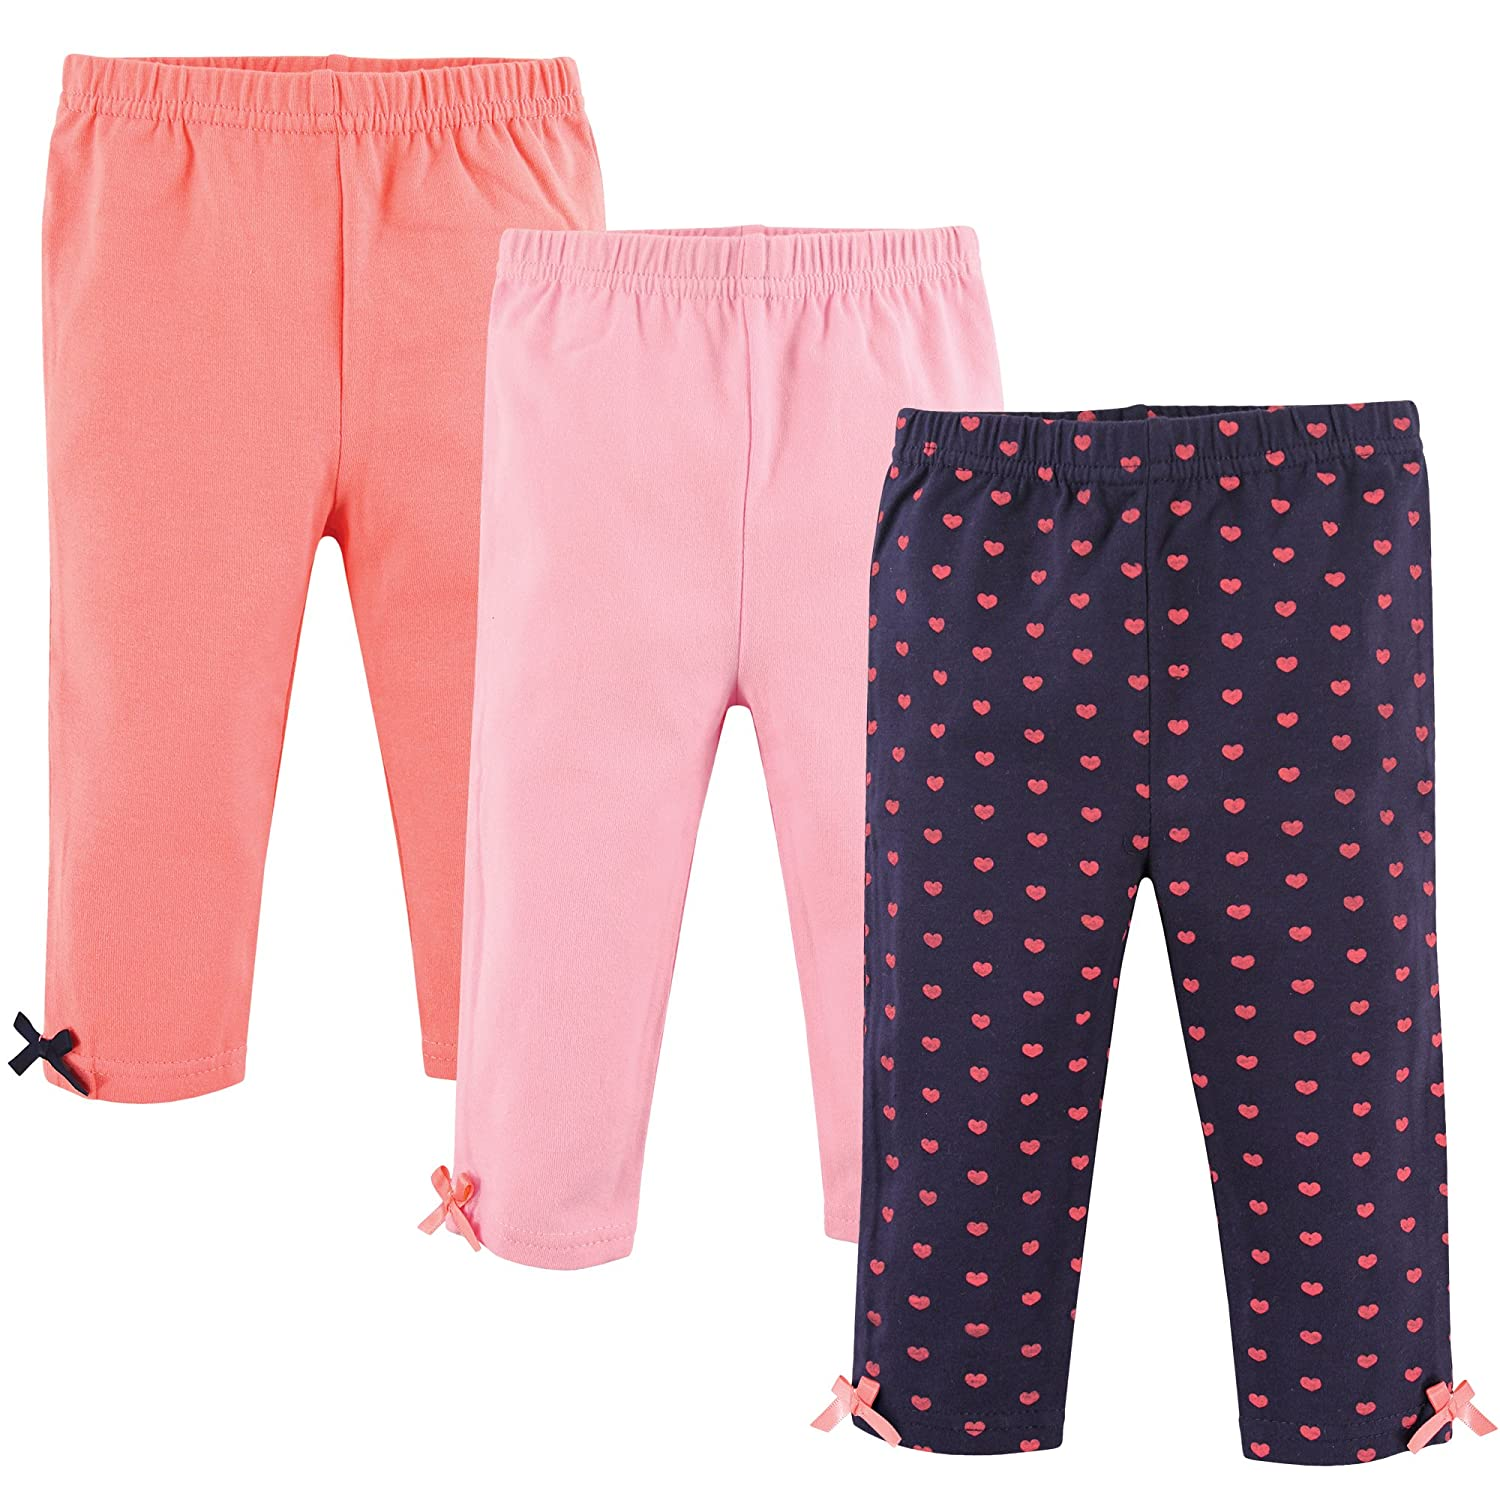 502f36ac8 Amazon.com: Hudson Baby Baby-Girl Leggings with Ankle Bow, 3 Pack: Clothing